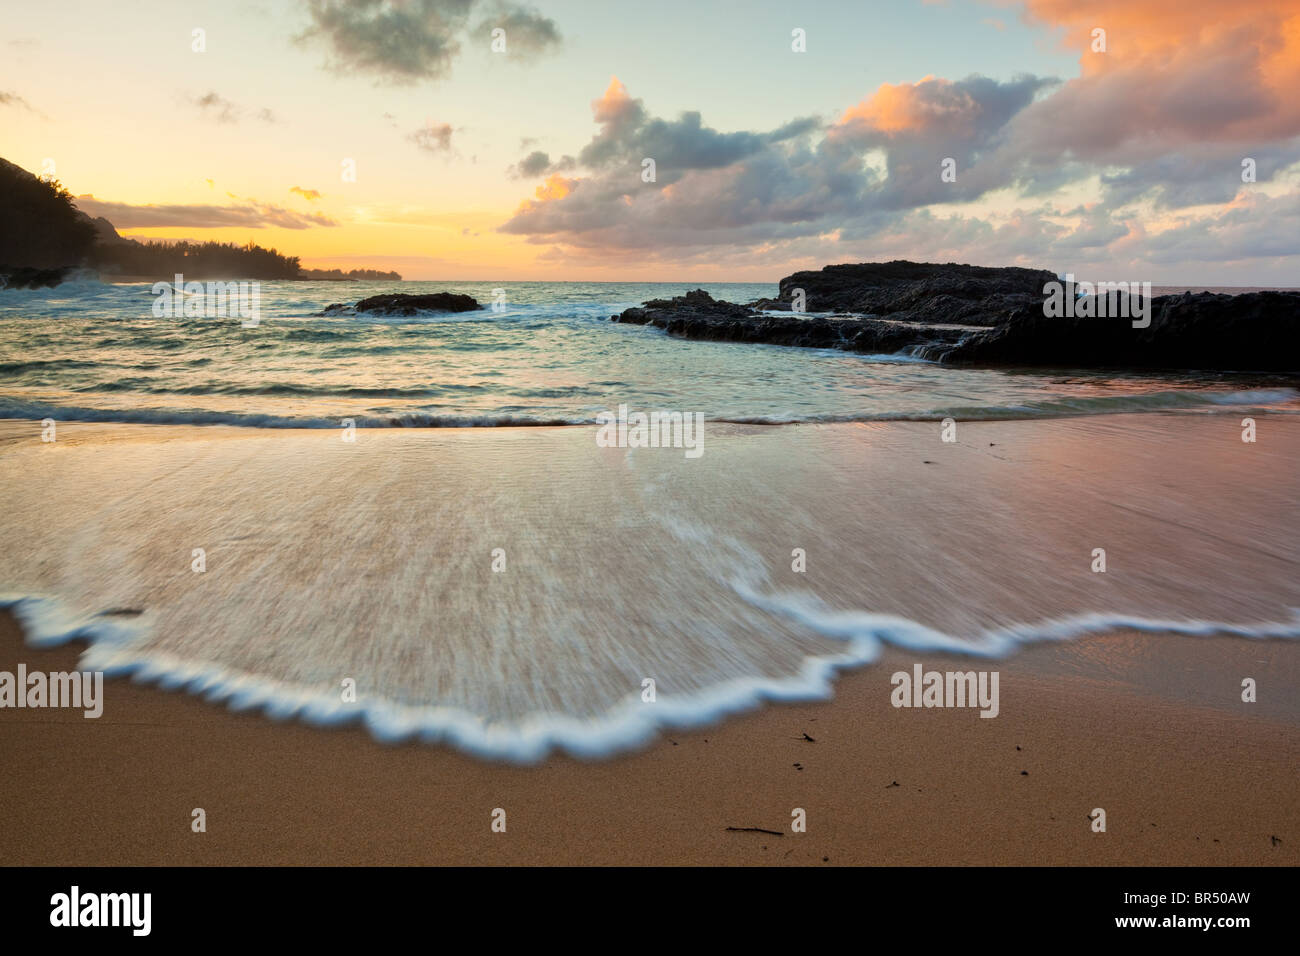 Kauai, HI Evening light on Lumaha'i Beach with sky colors reflecting on waves - Stock Image